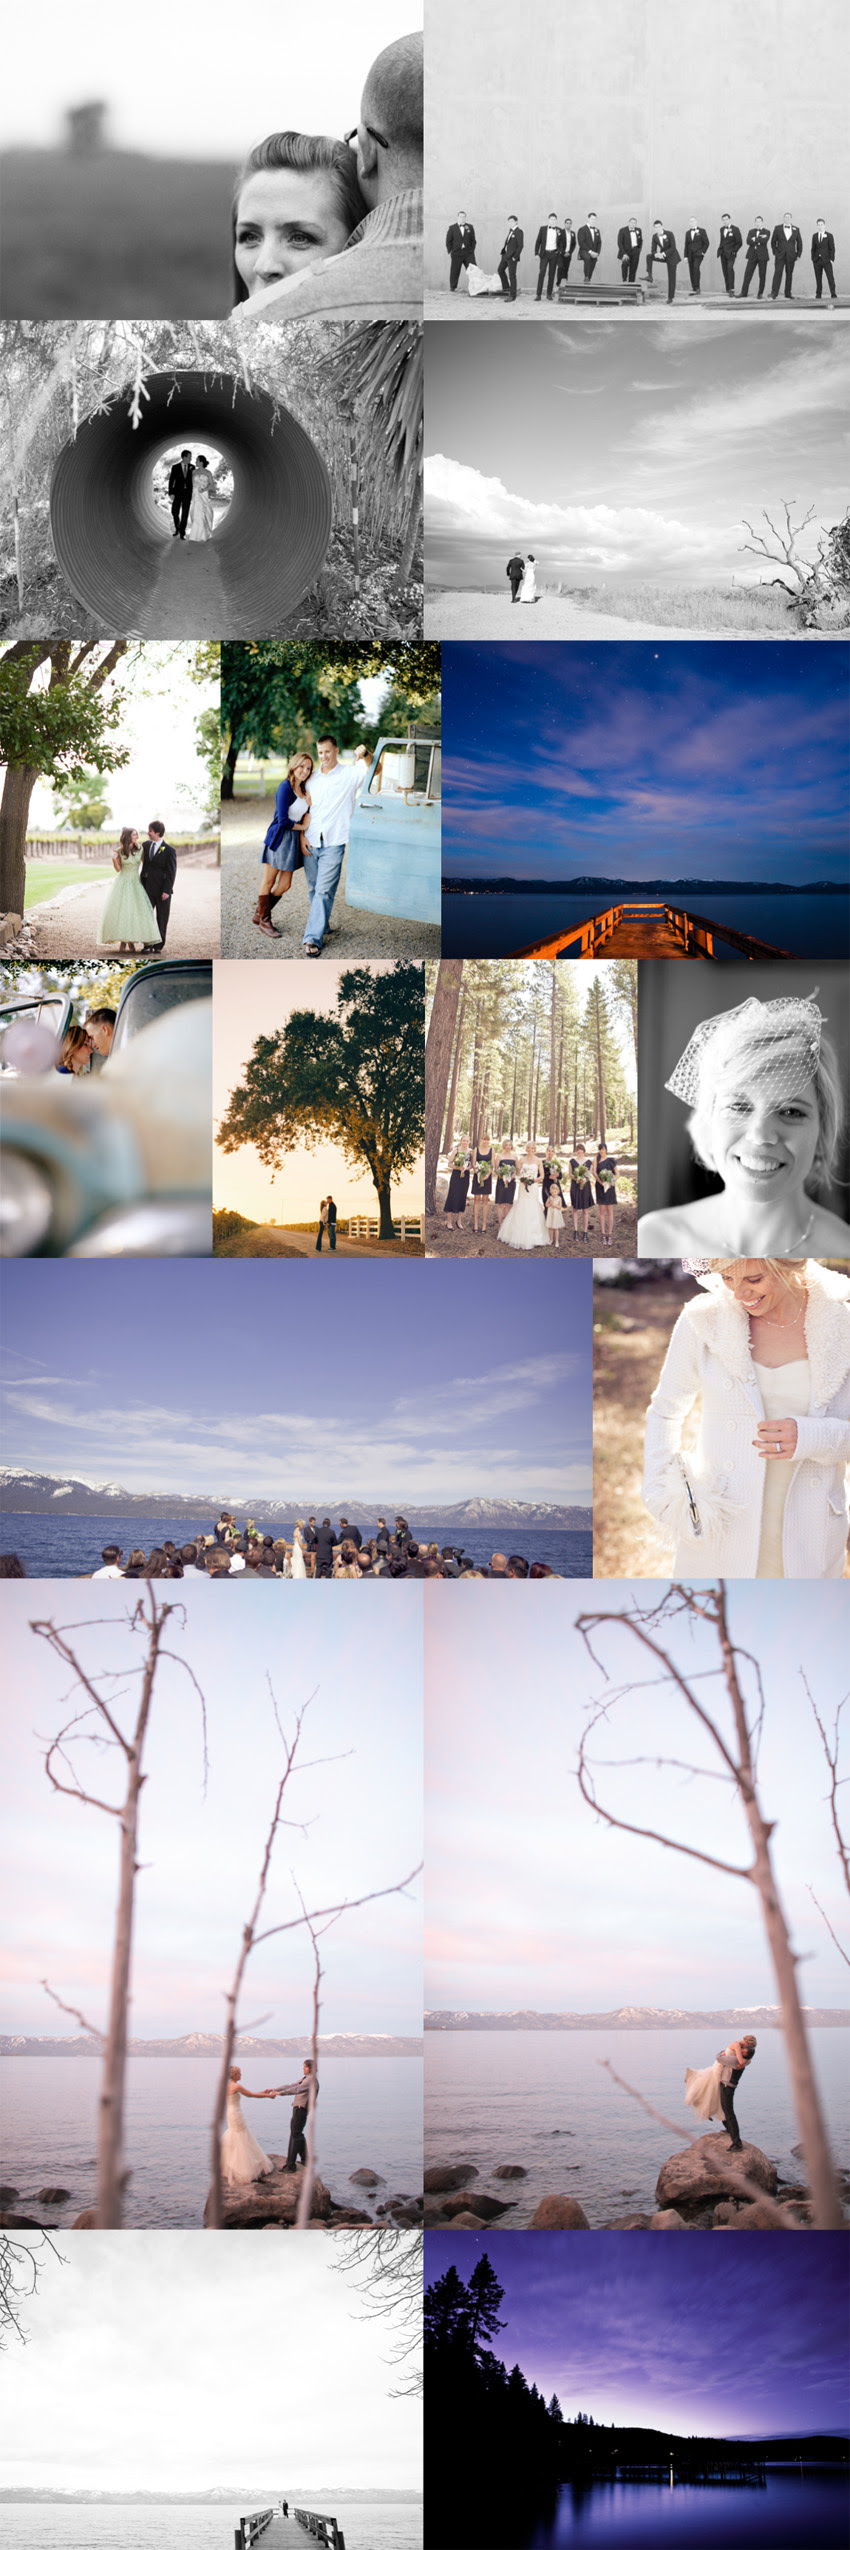 Bestof2010_ScottAndrew5 FIne art wedding photography lake tahoe